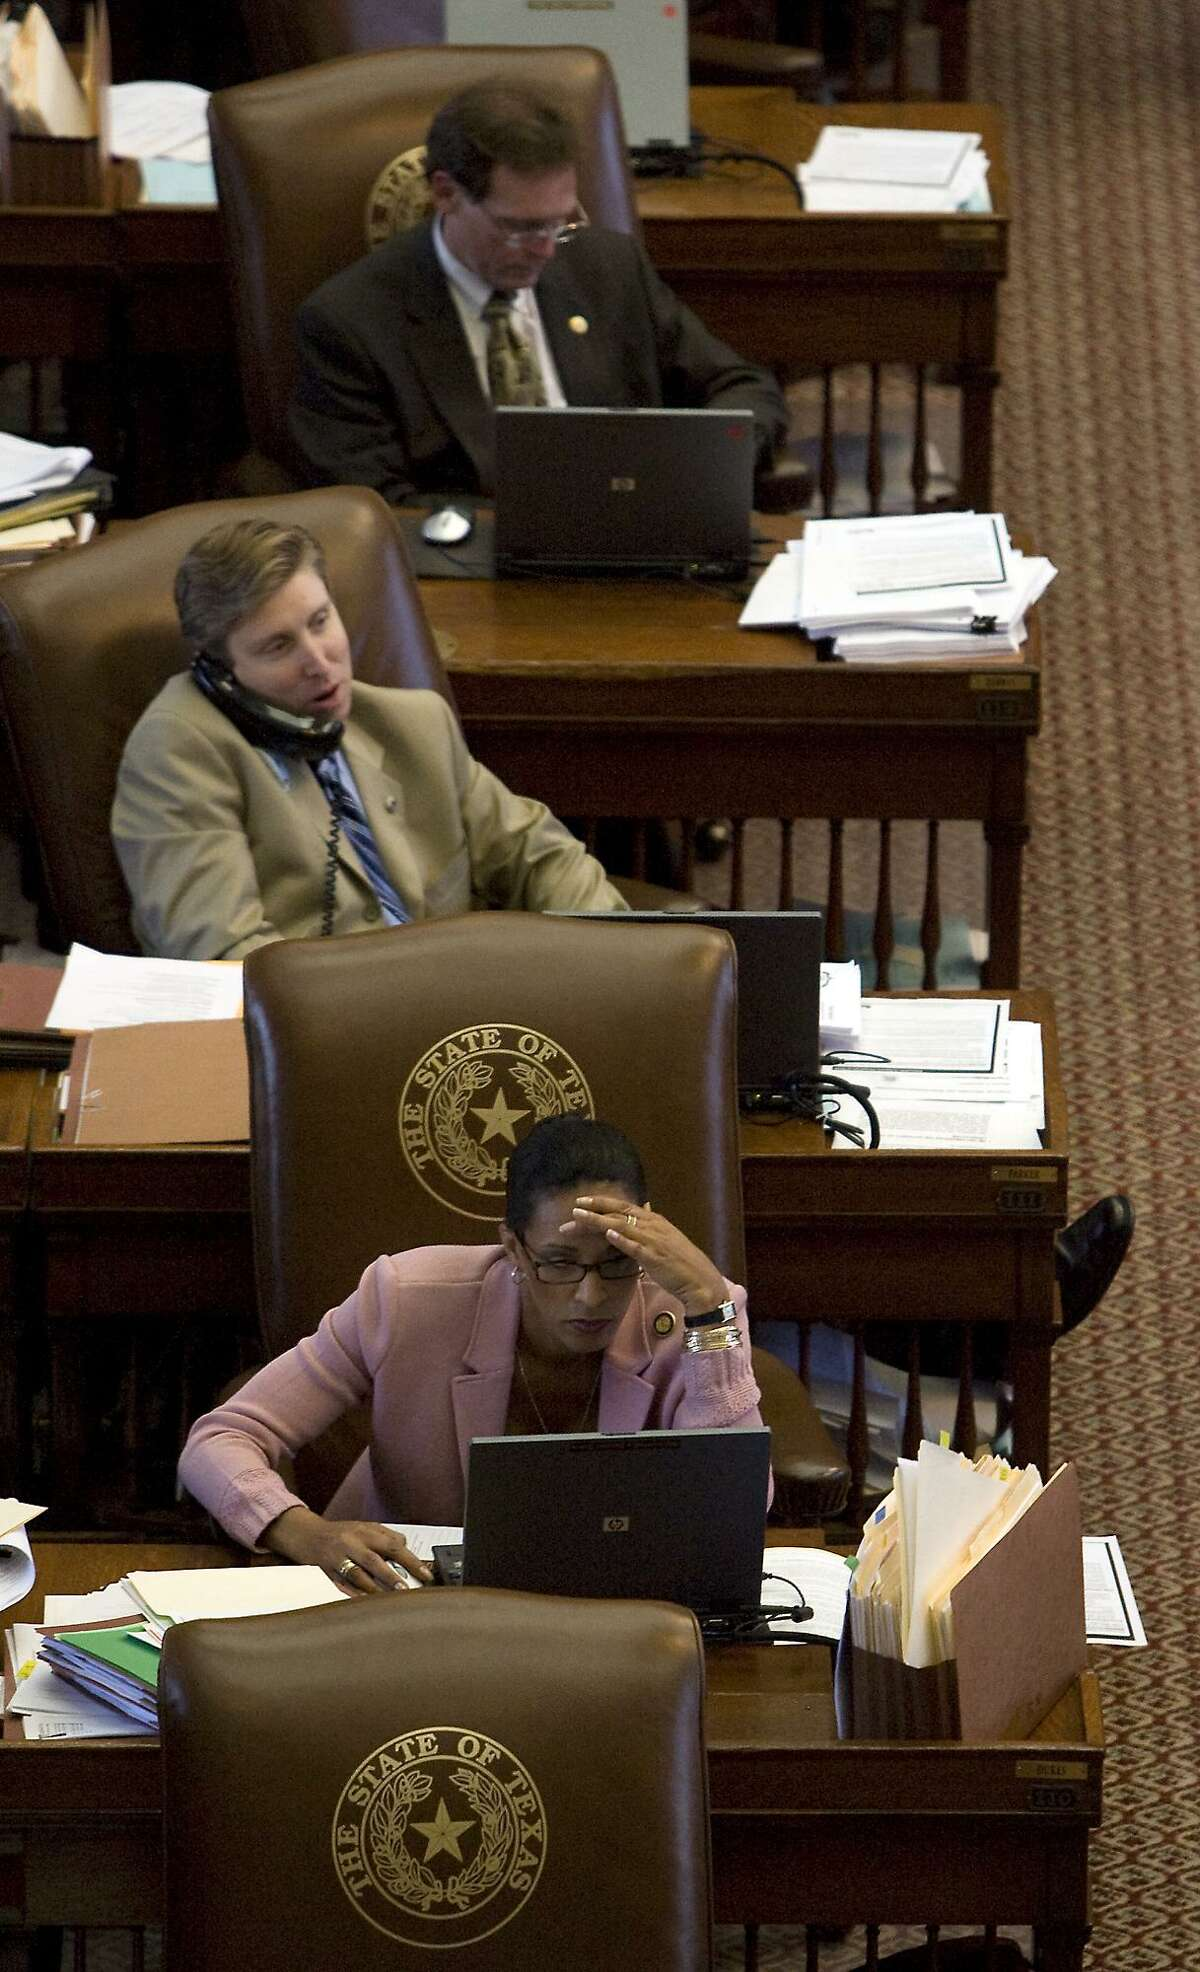 State Representatives Dawna Dukes, Tan Parker (middle) and John Zerwas at work during the session Thursday, May 14, 2009. May 14, 2009. Photo by Larry Kolvoord. Both Parker and Zerwas have withdrawn their candidacies for House Speaker in the last few weeks.